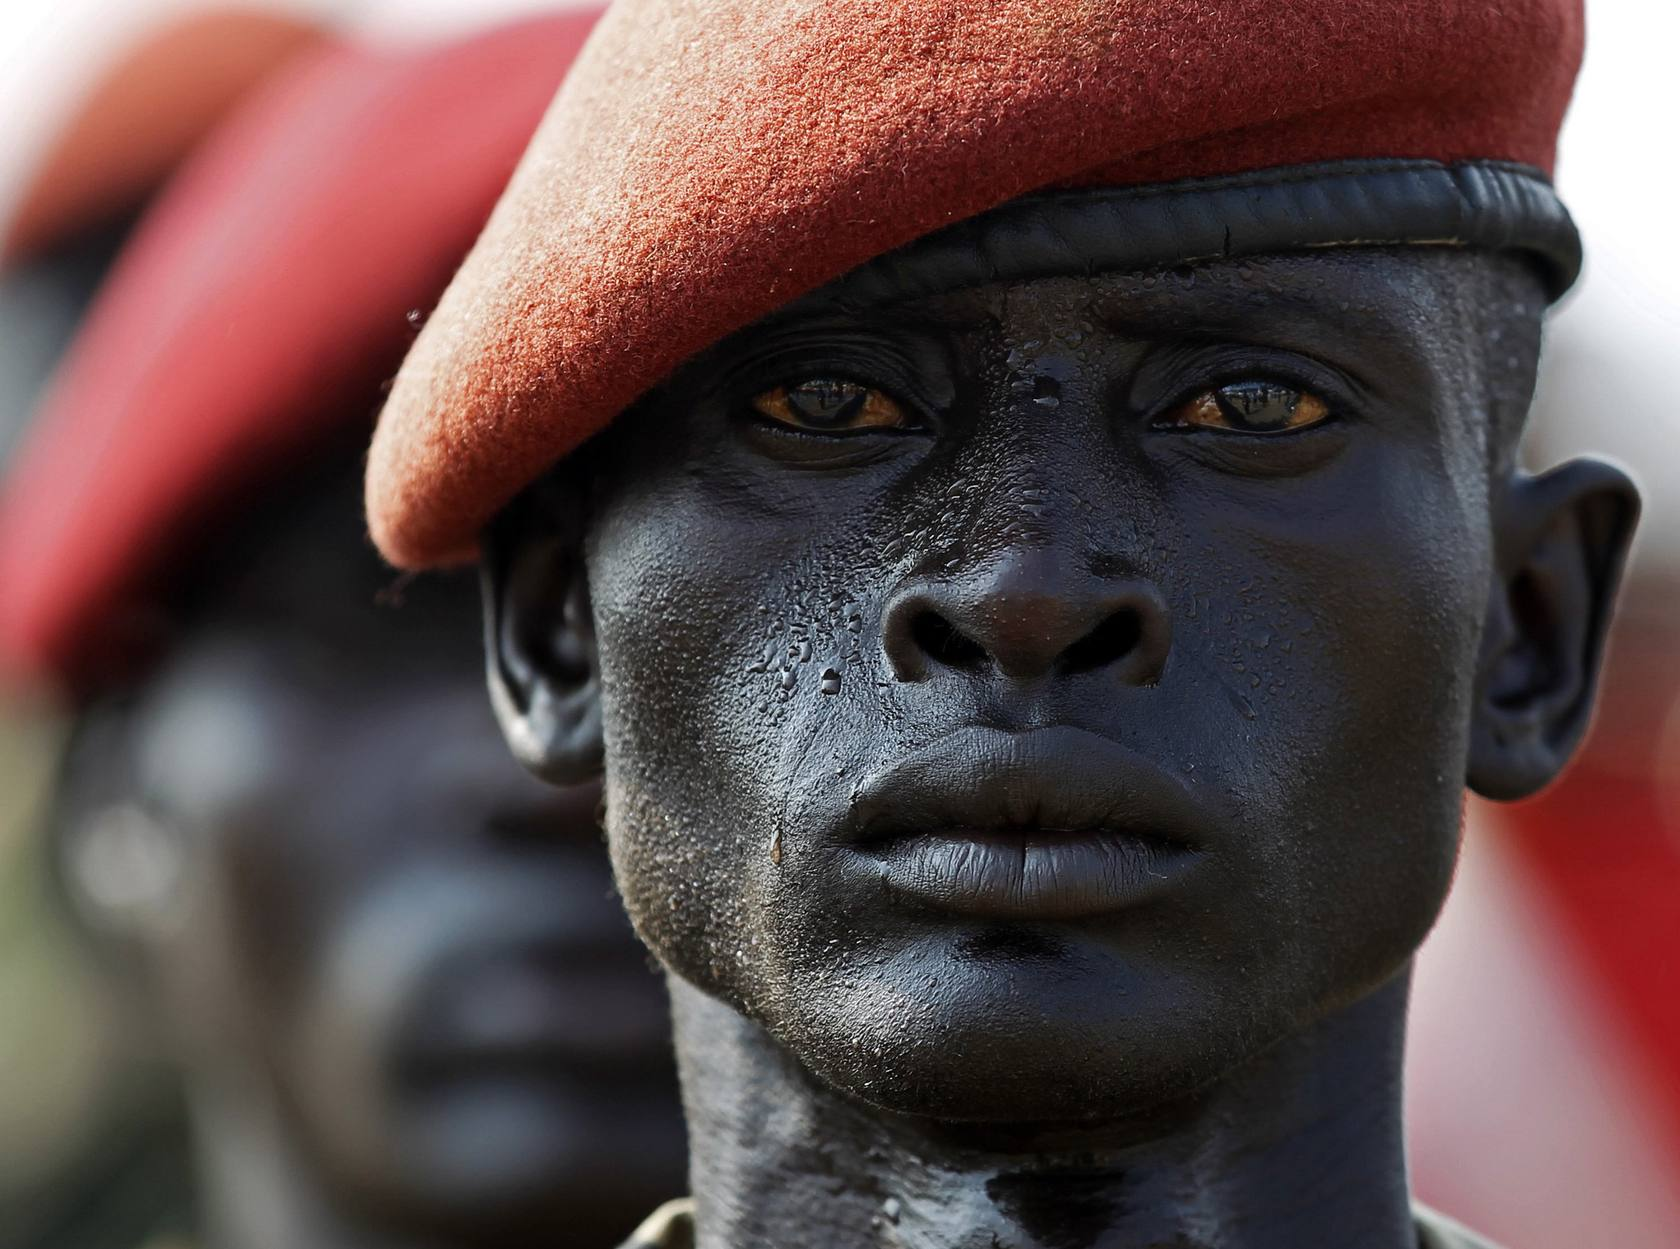 A SPLA soldier stands in line during a rehearsal of the Independence Day ceremony in Juba -0EMC4387.jpg-